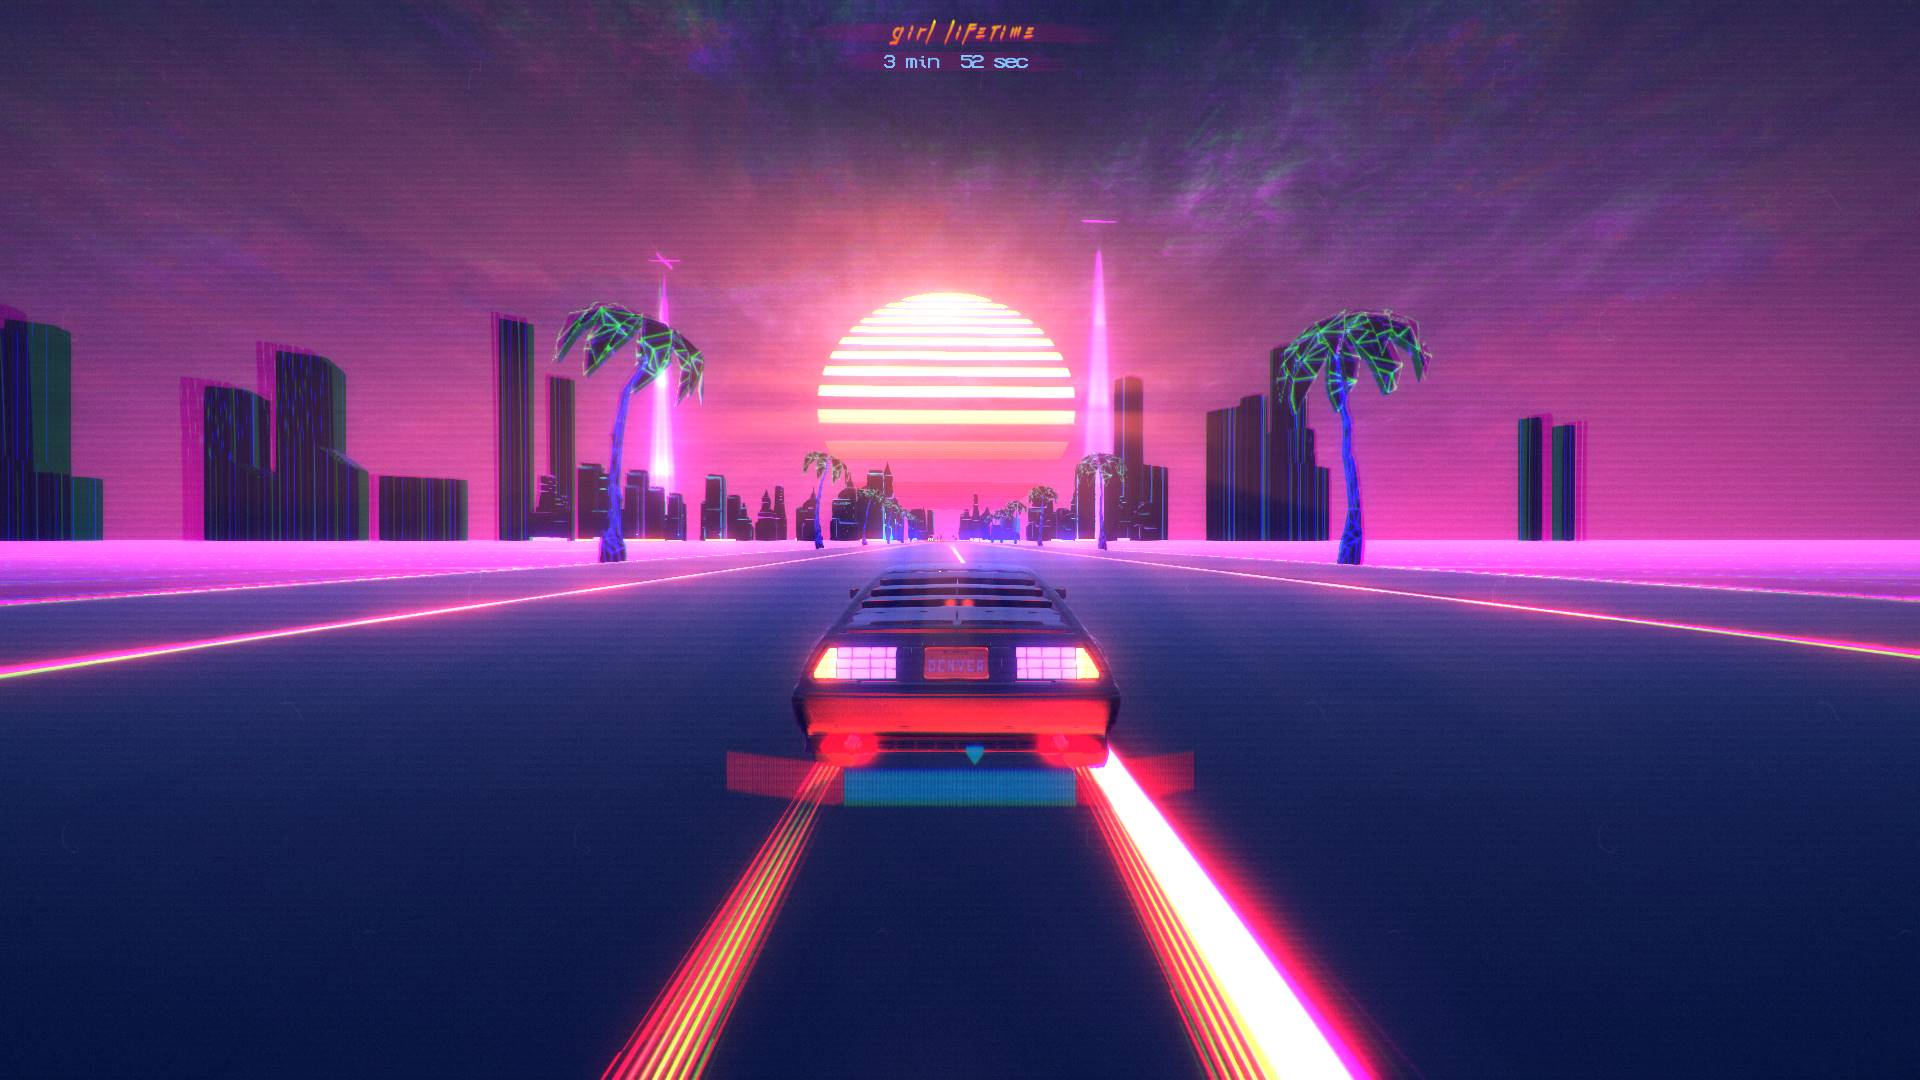 Chill Wave Car Wallpaper Outdrive 2016 Promotional Art Mobygames